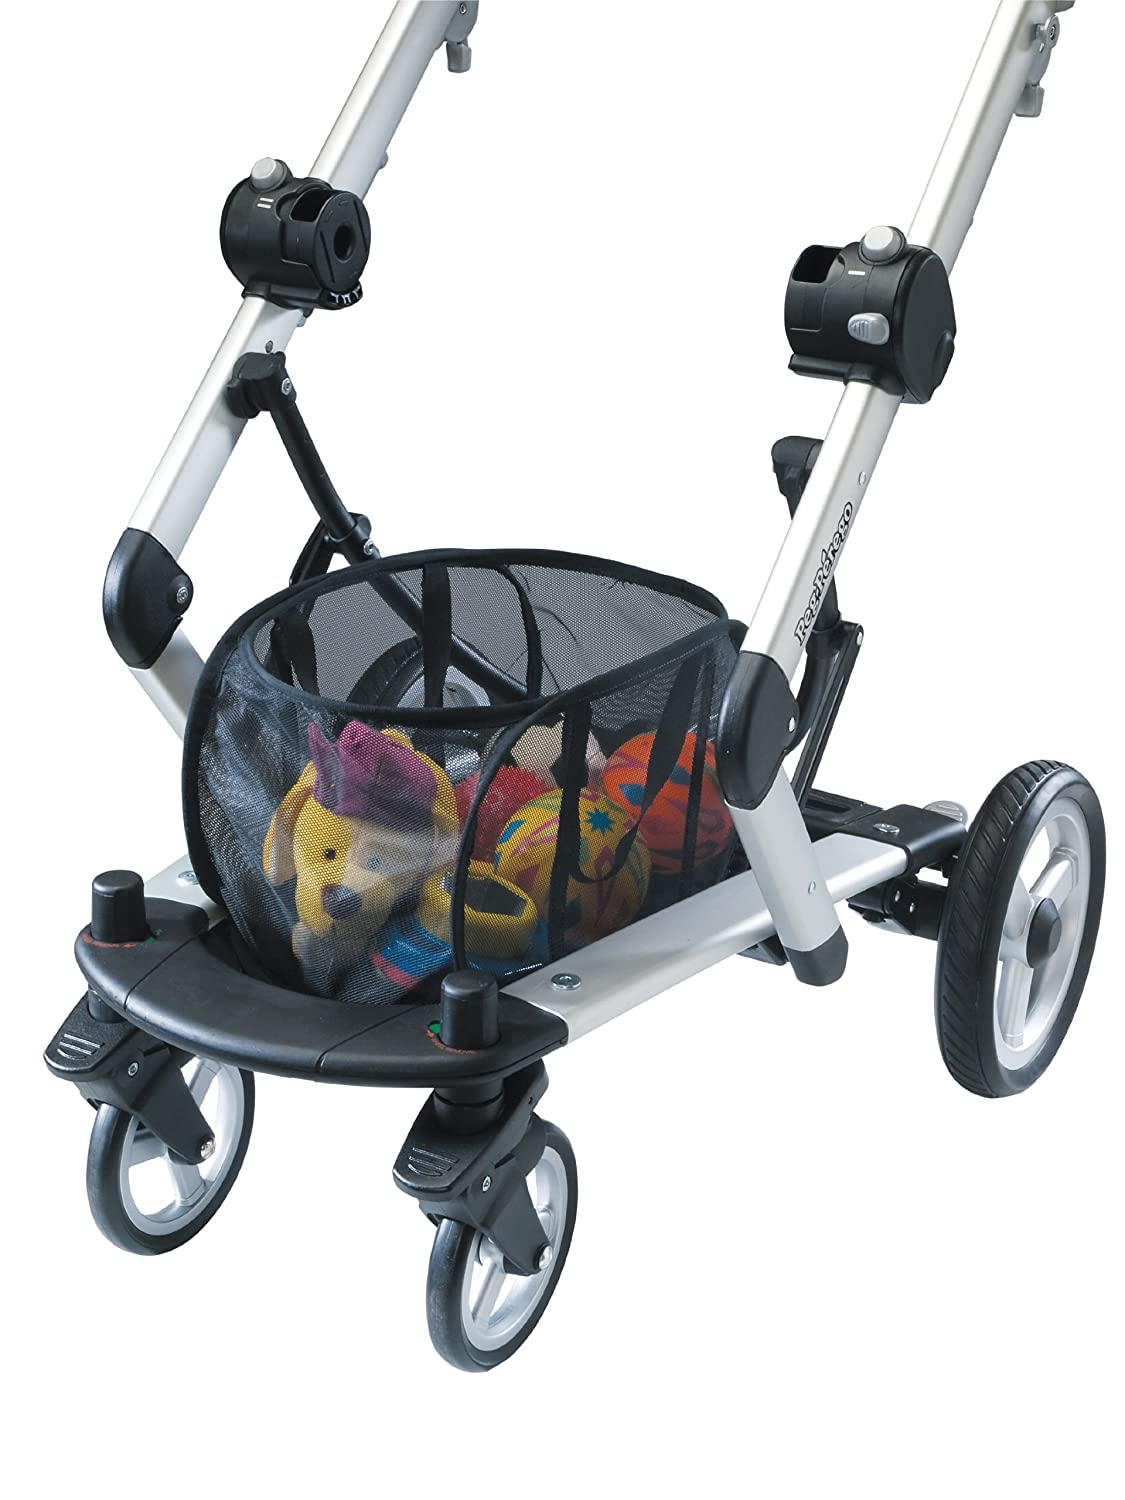 Peg-Perego Skate System, Pois Grey Discontinued by Manufacturer